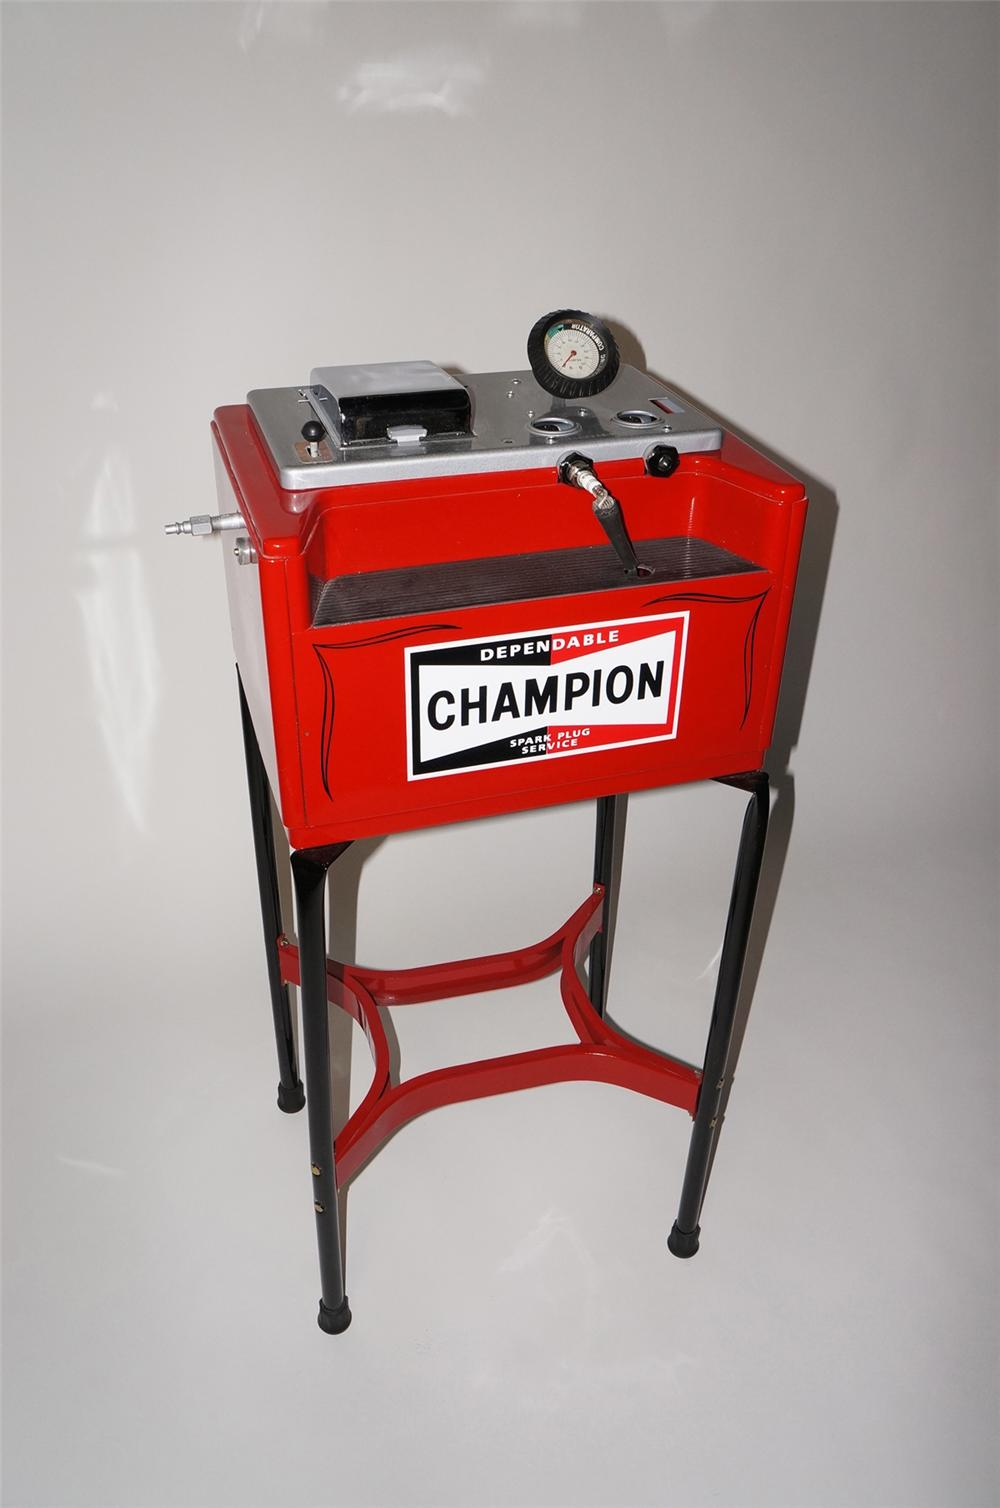 Outstanding 1940s-50s Champion Spark Plugs restored service station plug cleaner/servicer on stand. - Front 3/4 - 130716